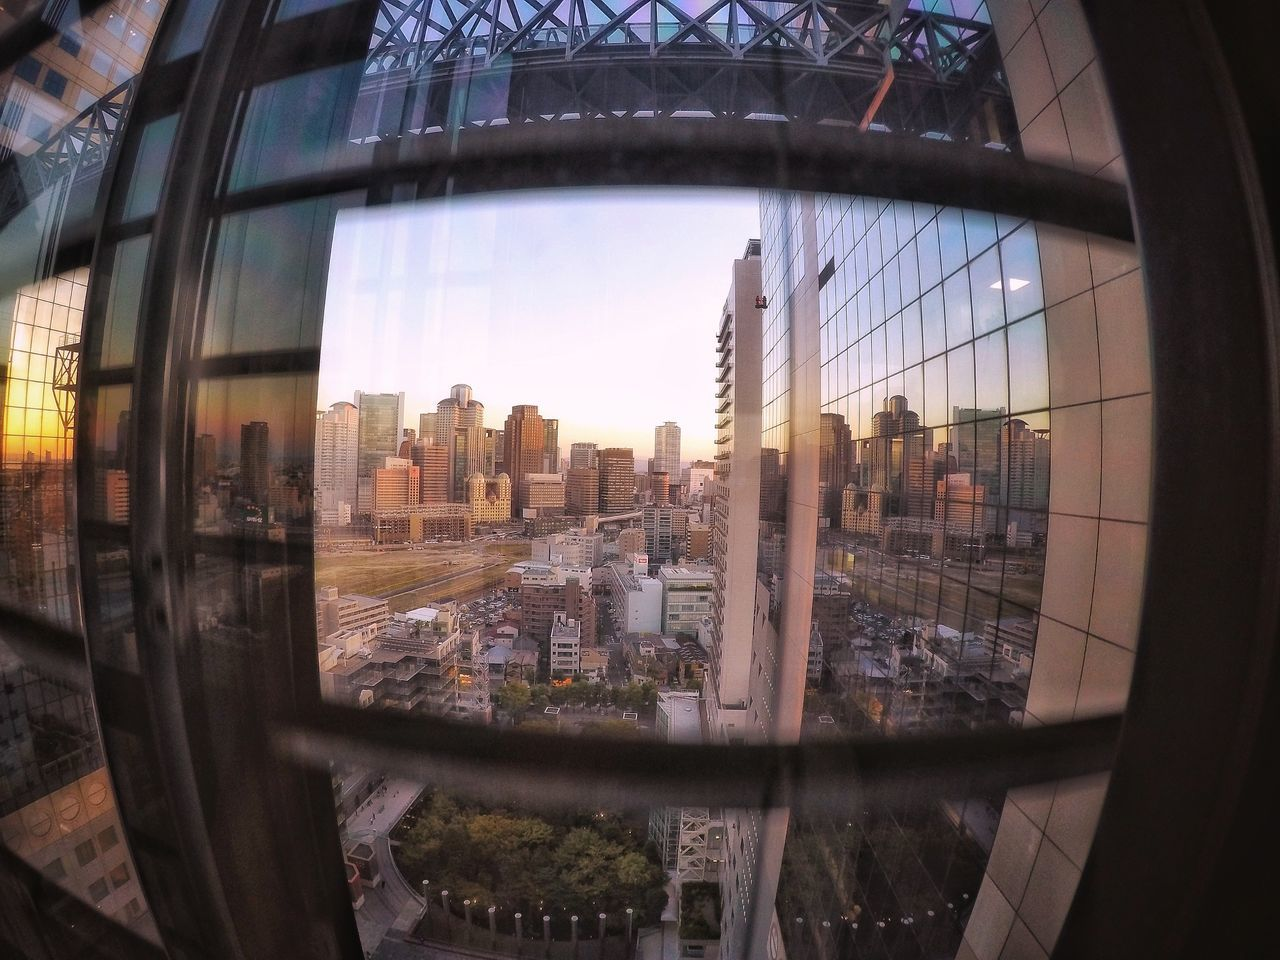 In The Elevator From My Point Of View OSAKA Cityscape Sunset Elevator Window View Reflection Window Reflections Buildings Building Exterior Buildings & Sky Geometric Shapes Architecture Perspective Light And Shadow Travel Photography Capture The Moment GoPrography EyeEm Best Shots EyeEm Best Edits